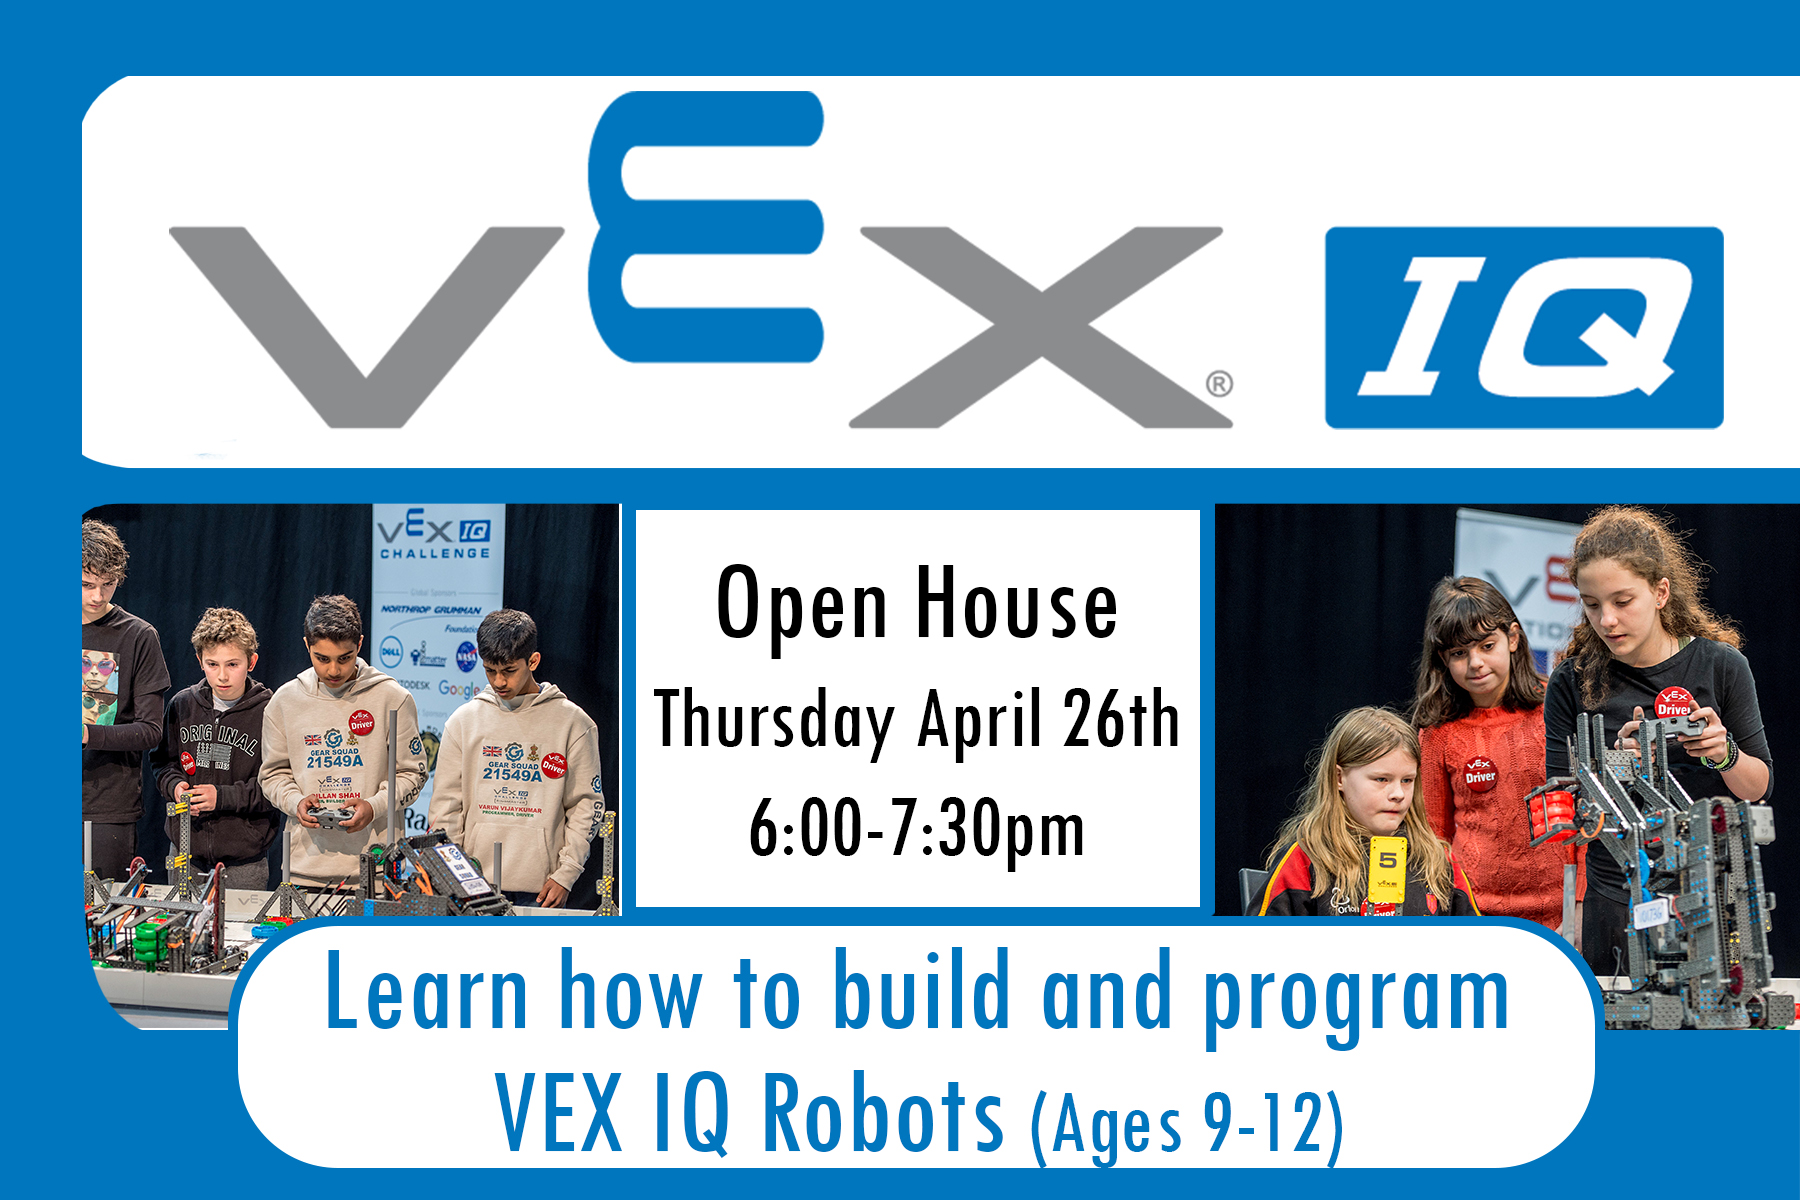 VEX Open House